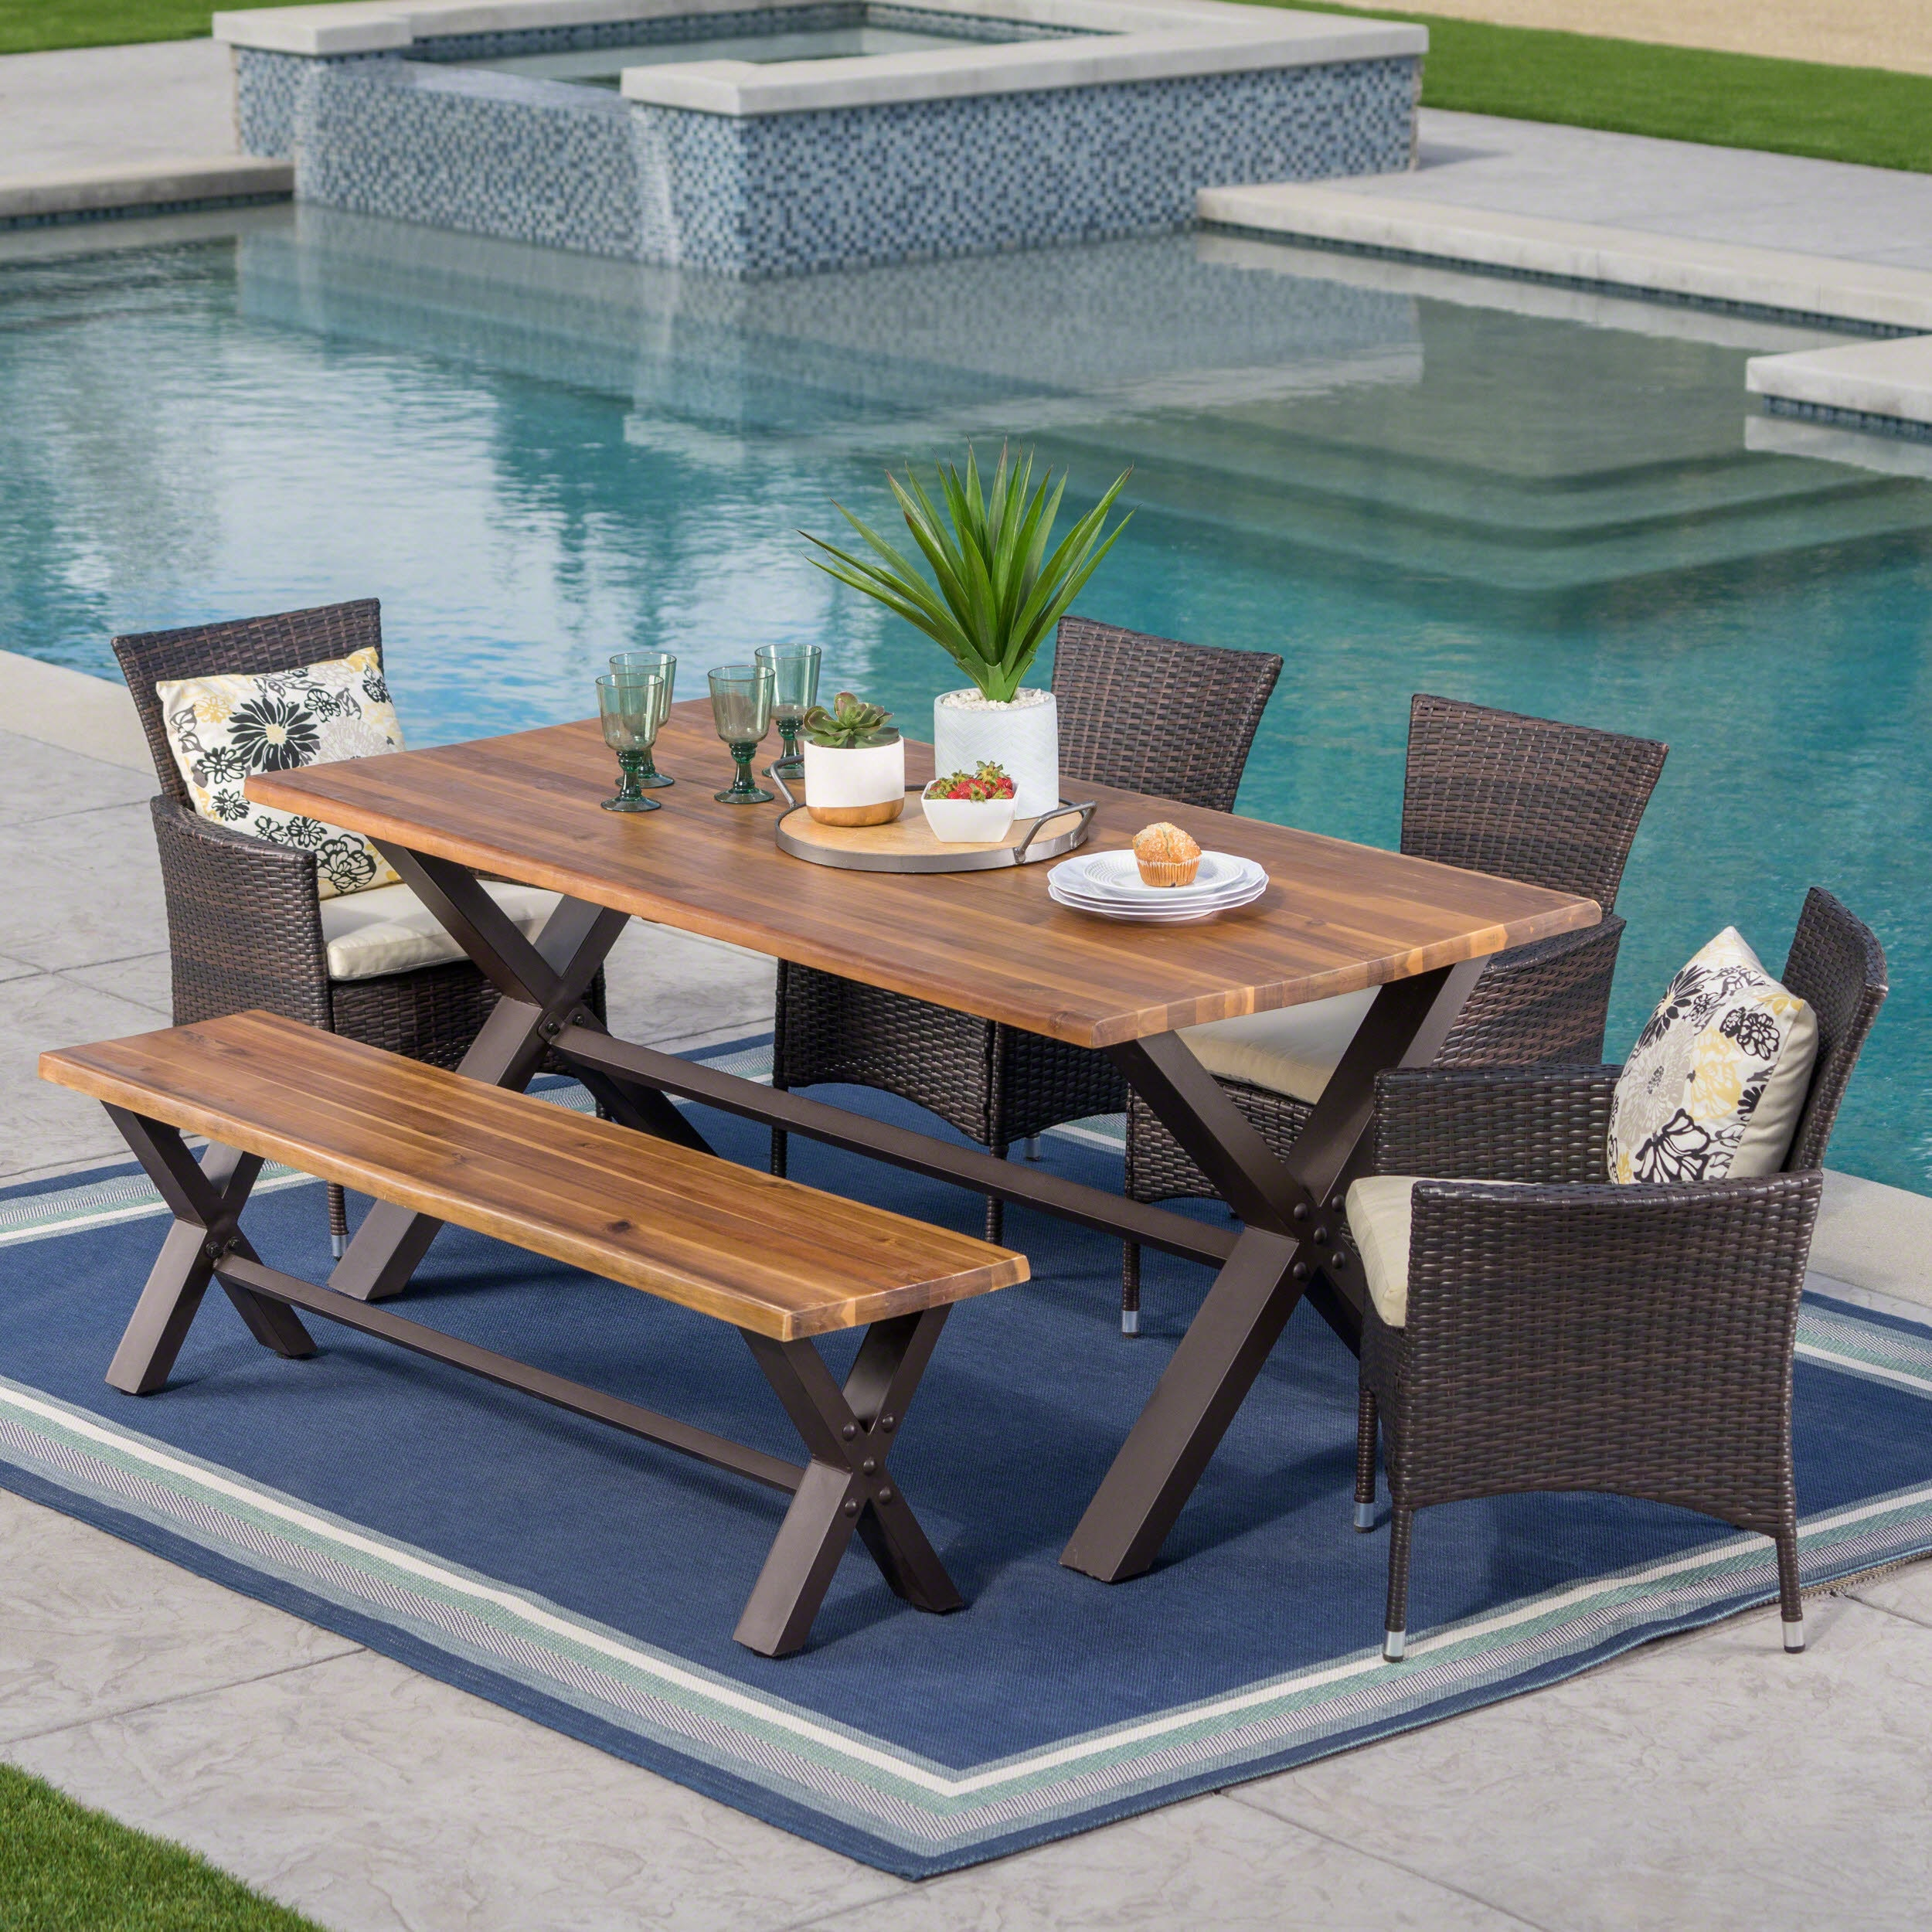 Patio Furniture Sets Images